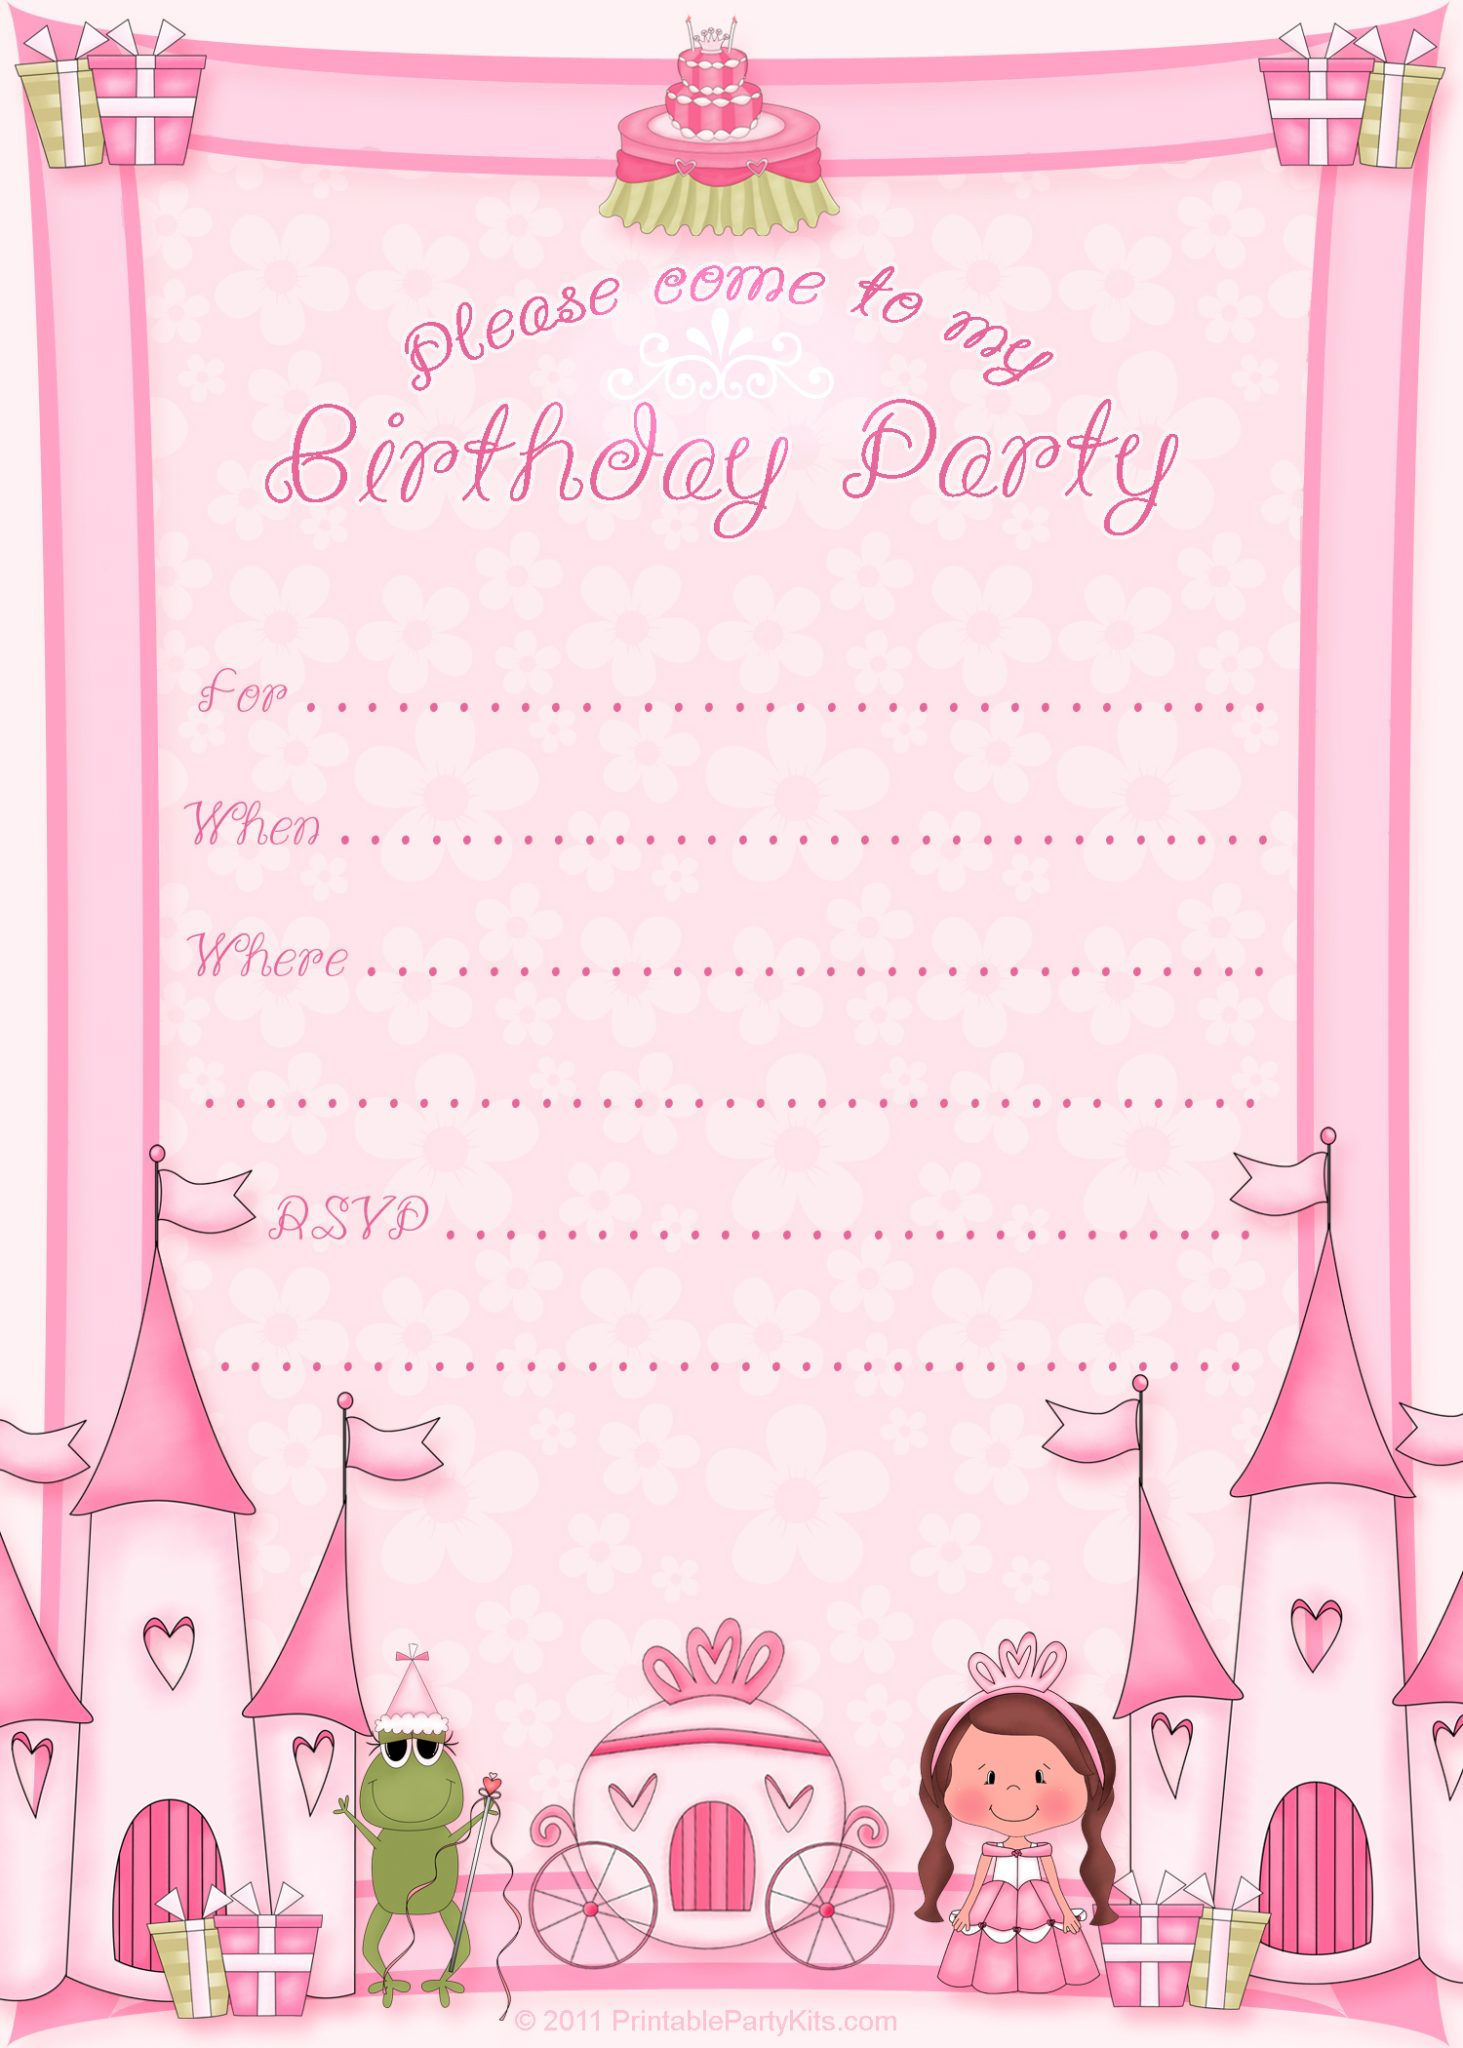 Free printable princess birthday party invitations printable party click on the printable princess birthday party invitation template to enlarge and download it filmwisefo Image collections